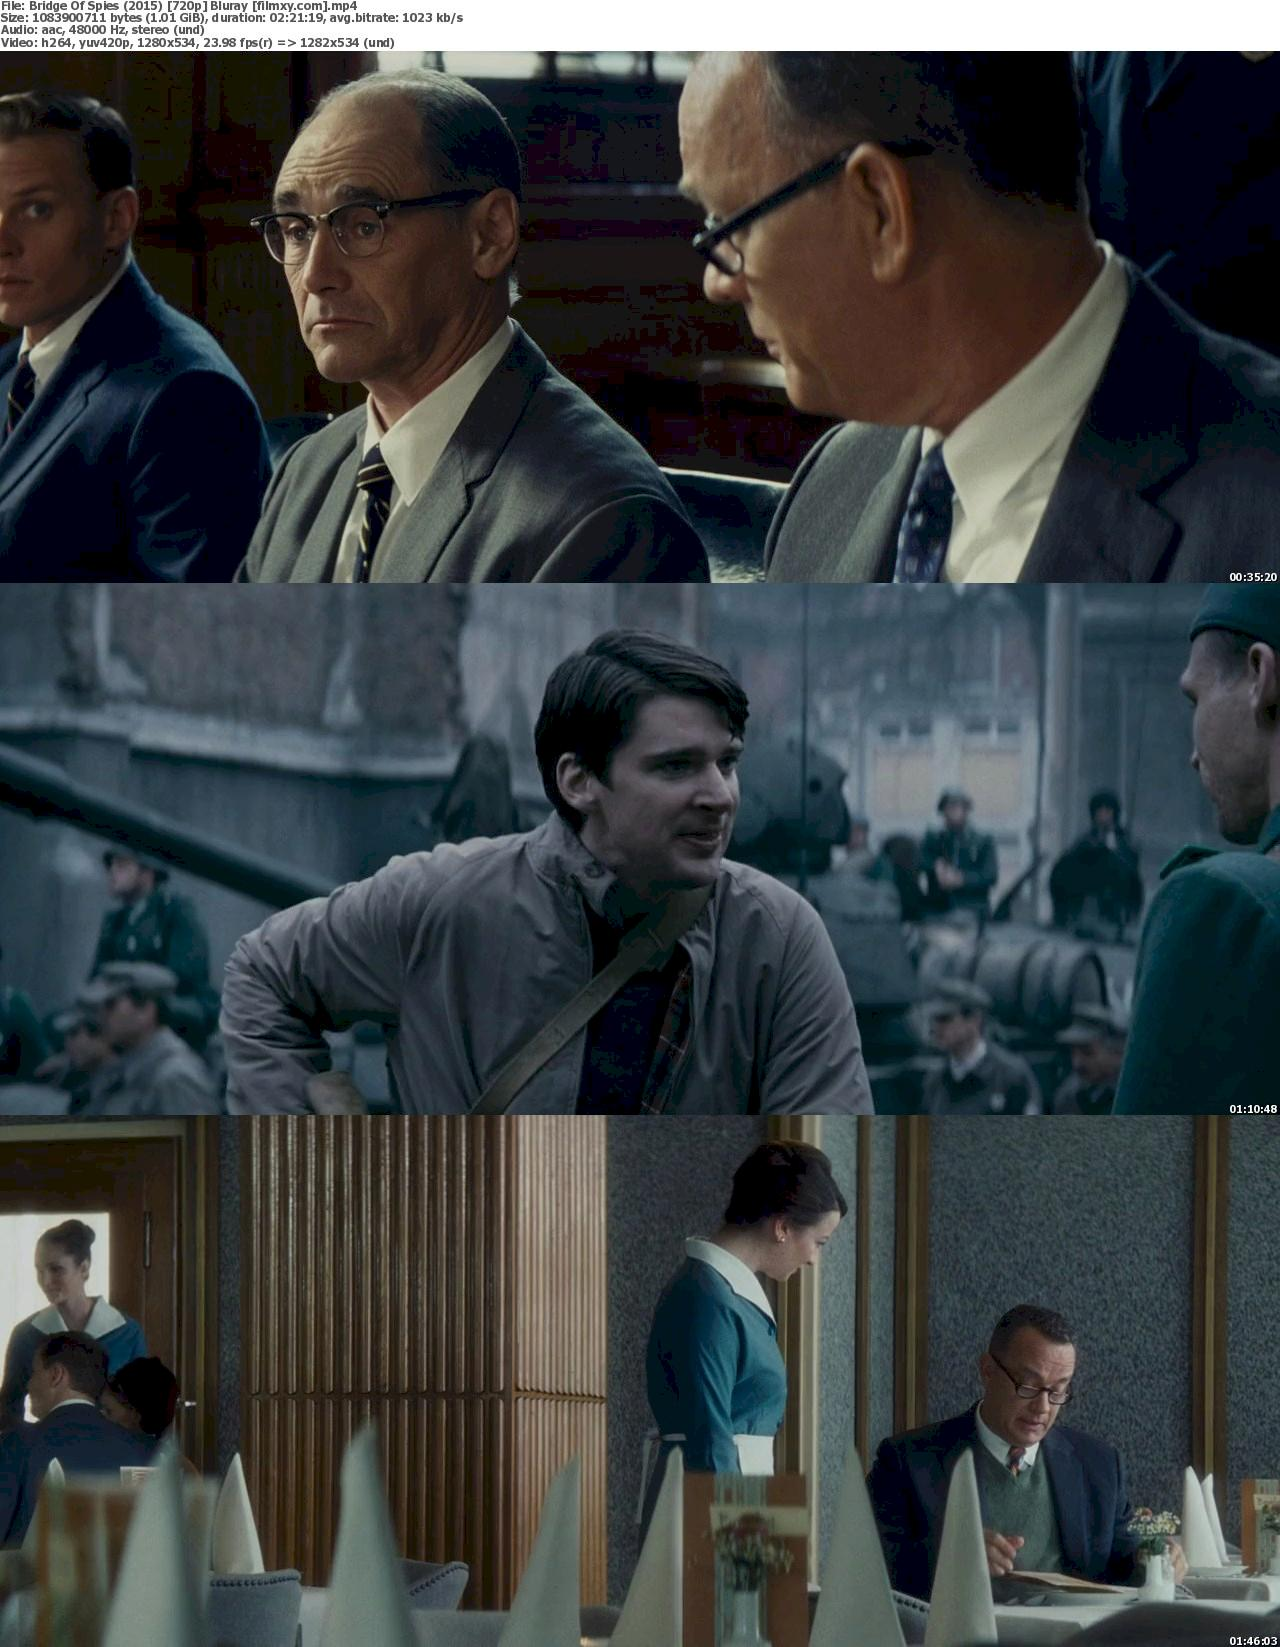 Bridge Of Spies (2015) 720p & 1080p Bluray Free Download 720p Screenshot